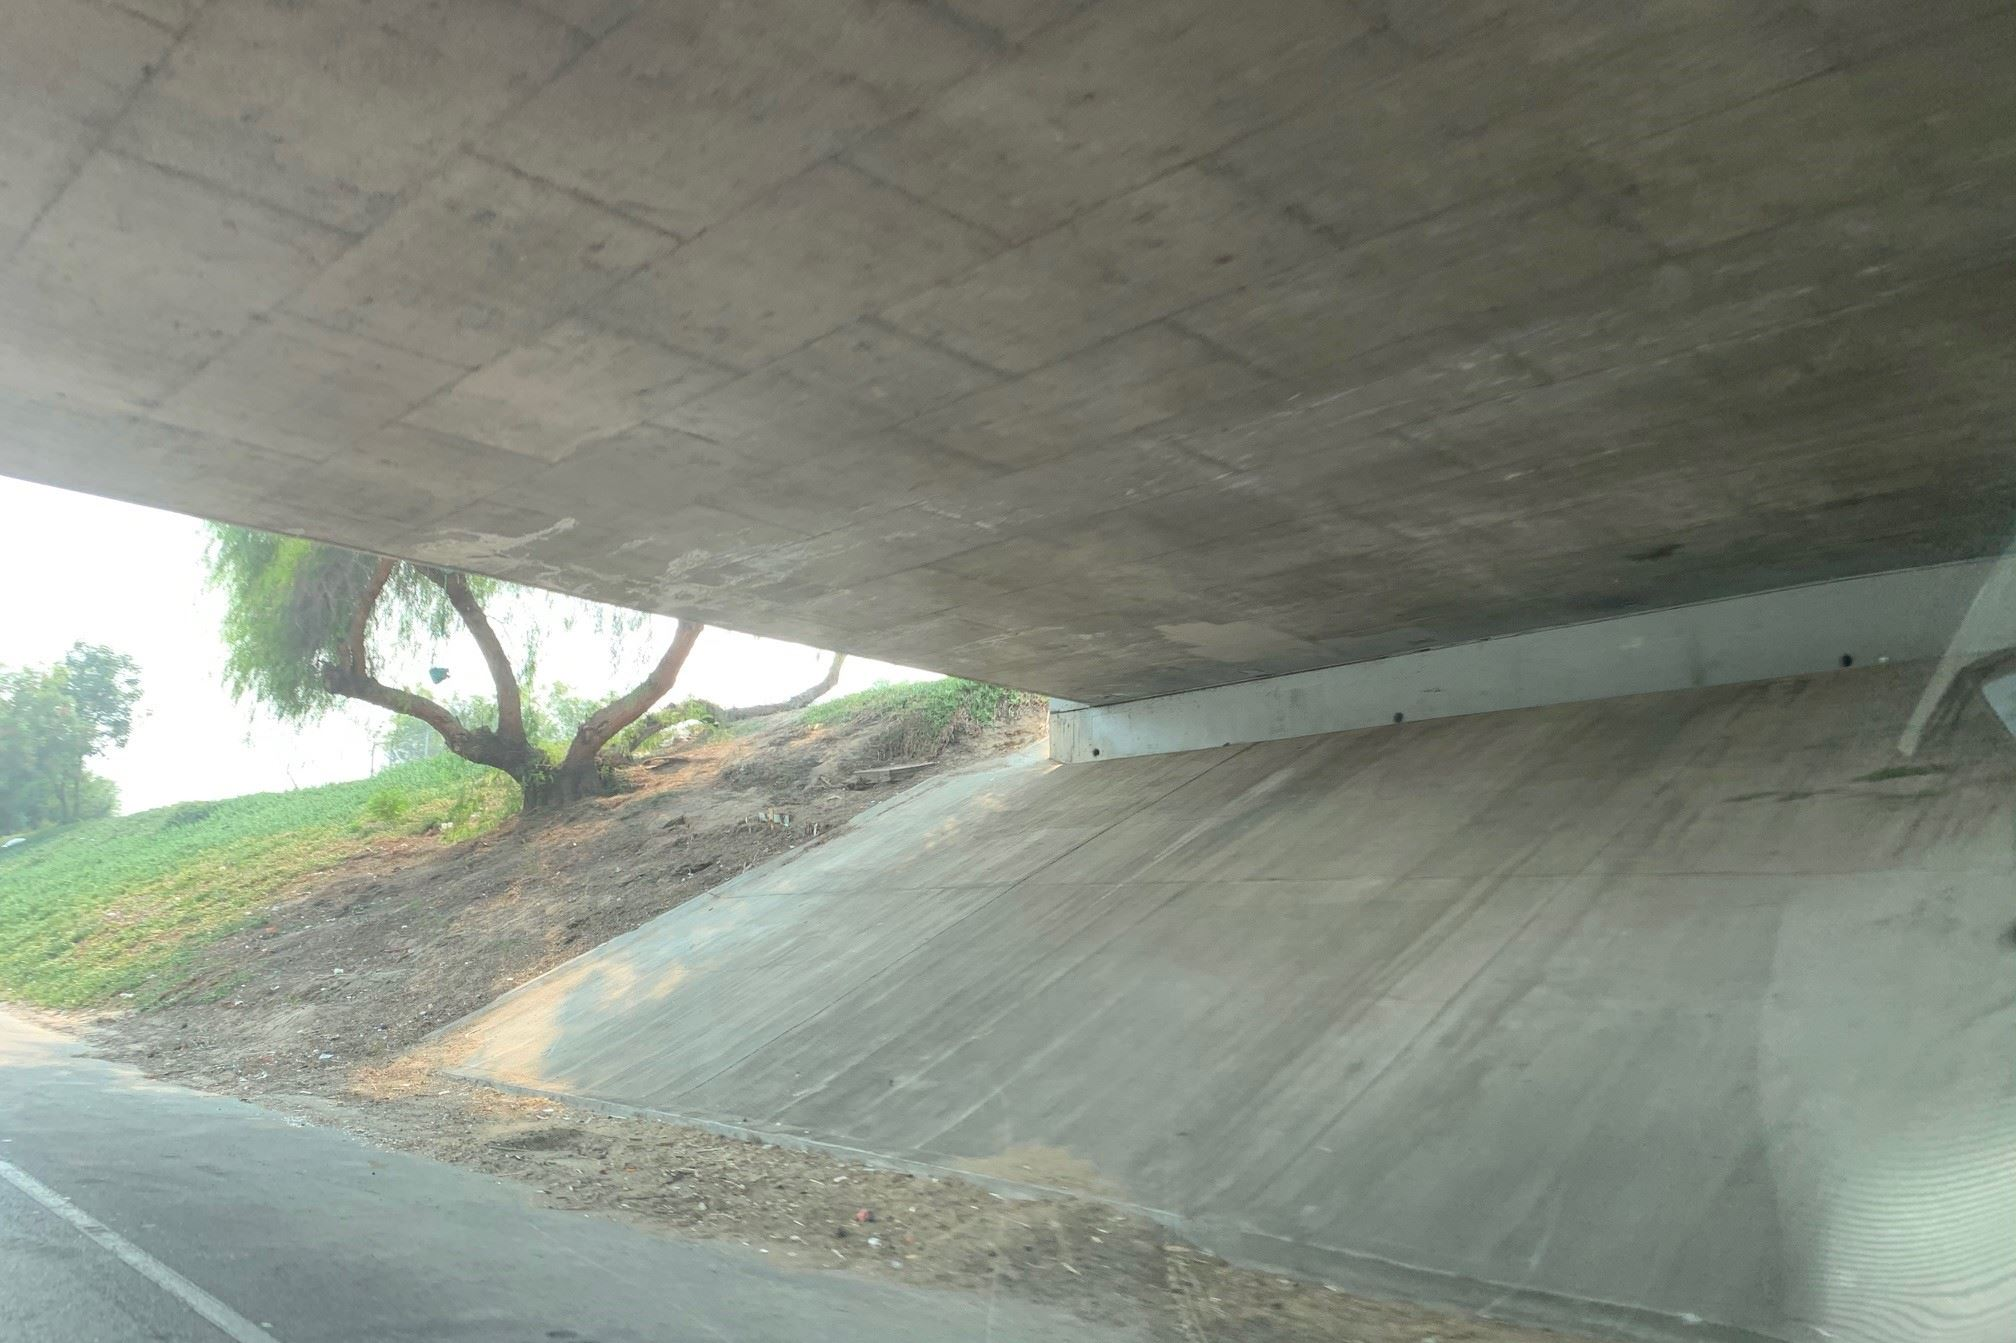 State Route 99 Underpass after cleanup